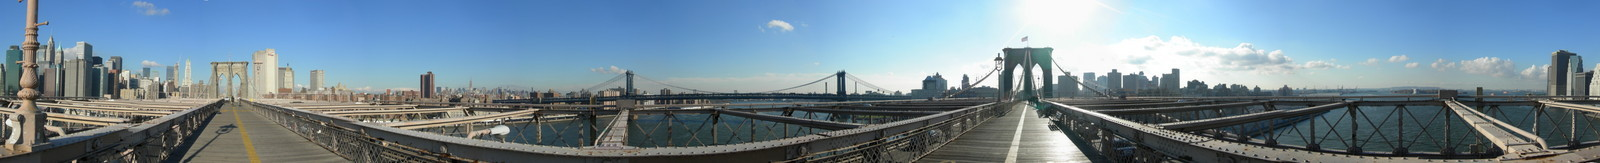 360 on Brooklyn Bridge